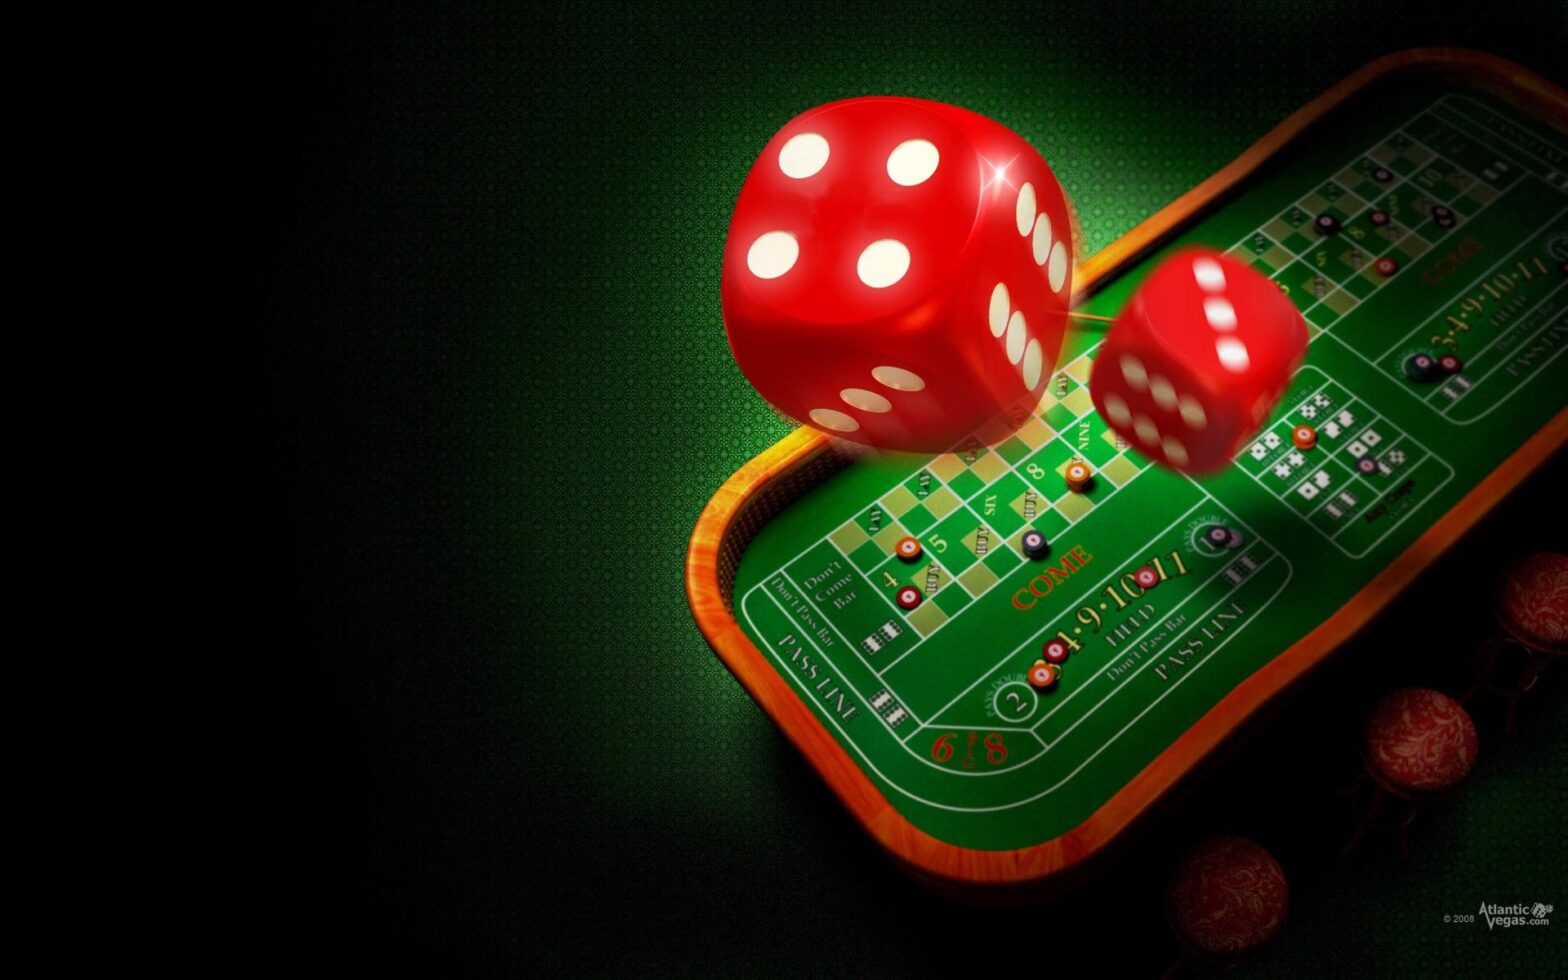 Using No Deposit Casino Codes Is the Only Way To Go